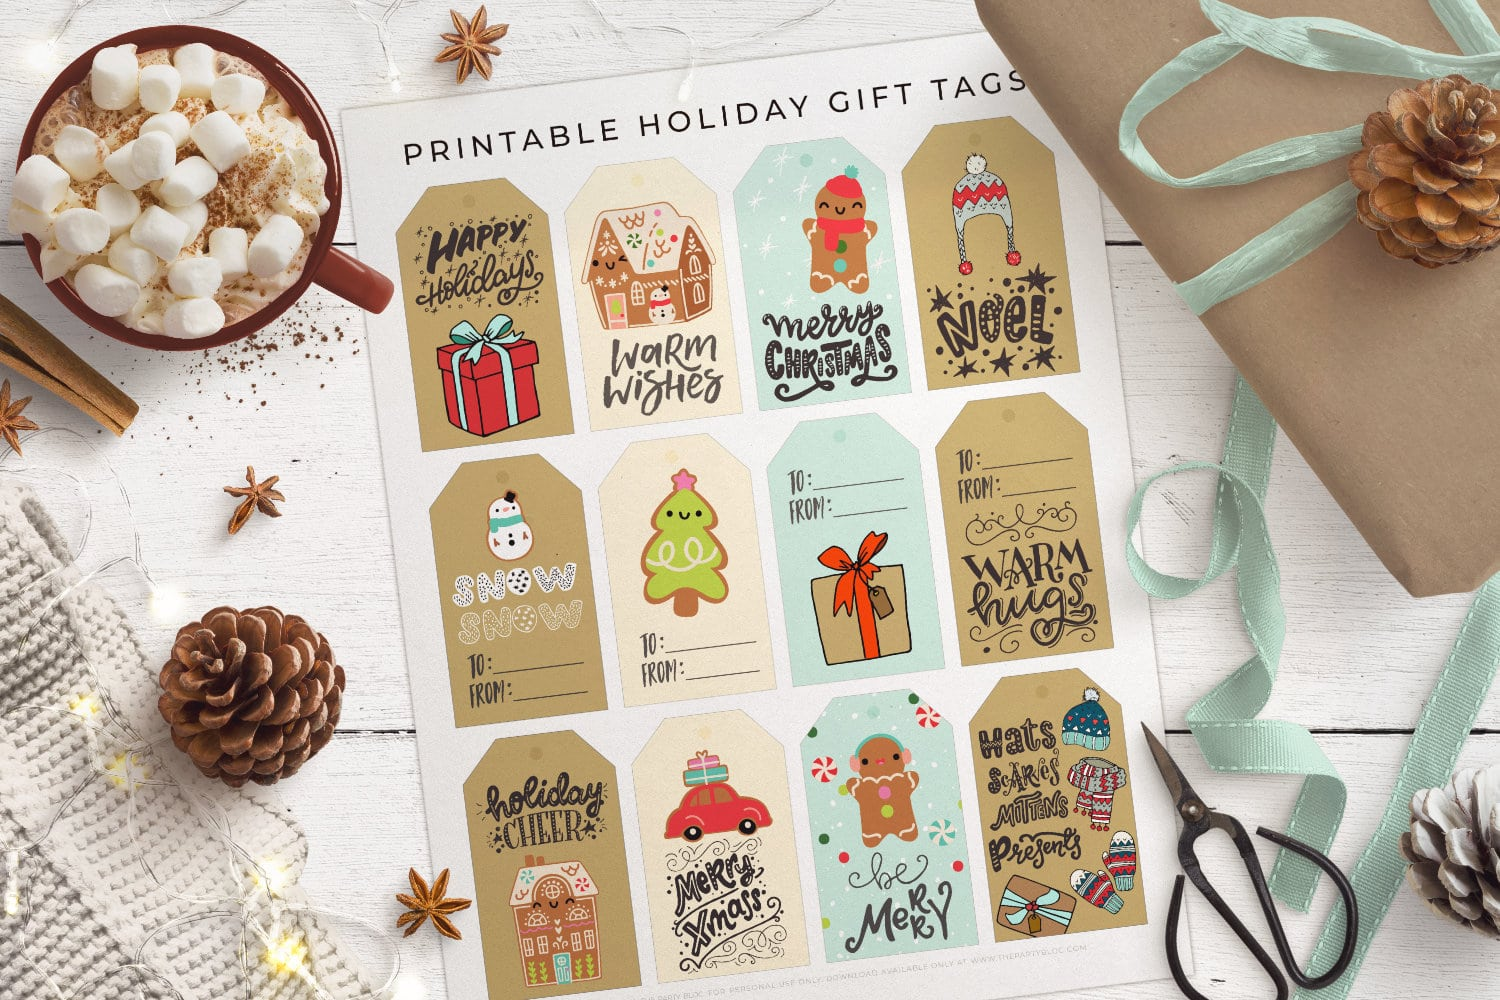 top view of full sheet of printed christmas gift tags on a white wood table, with a wrapped gift, ribbons, hot chocolate and christmas decor